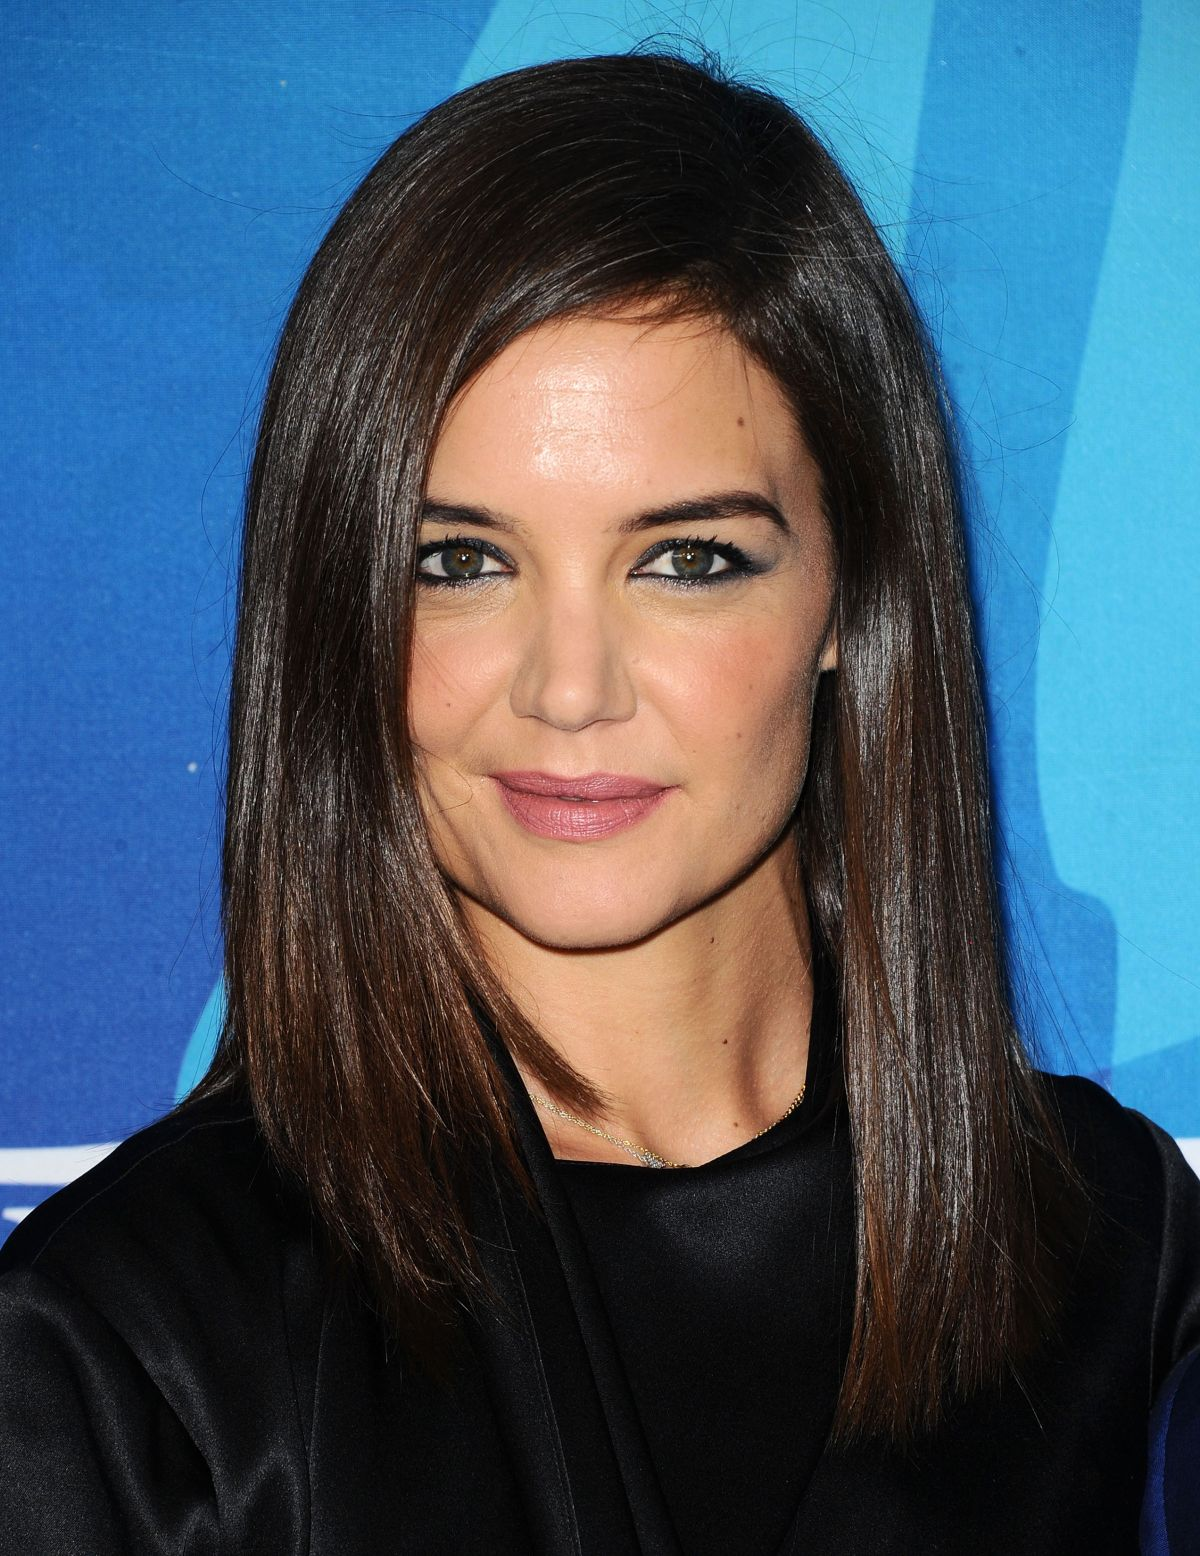 KATIE HOLMES at WWD and Variety's Stylemakers Event in Culver City ...